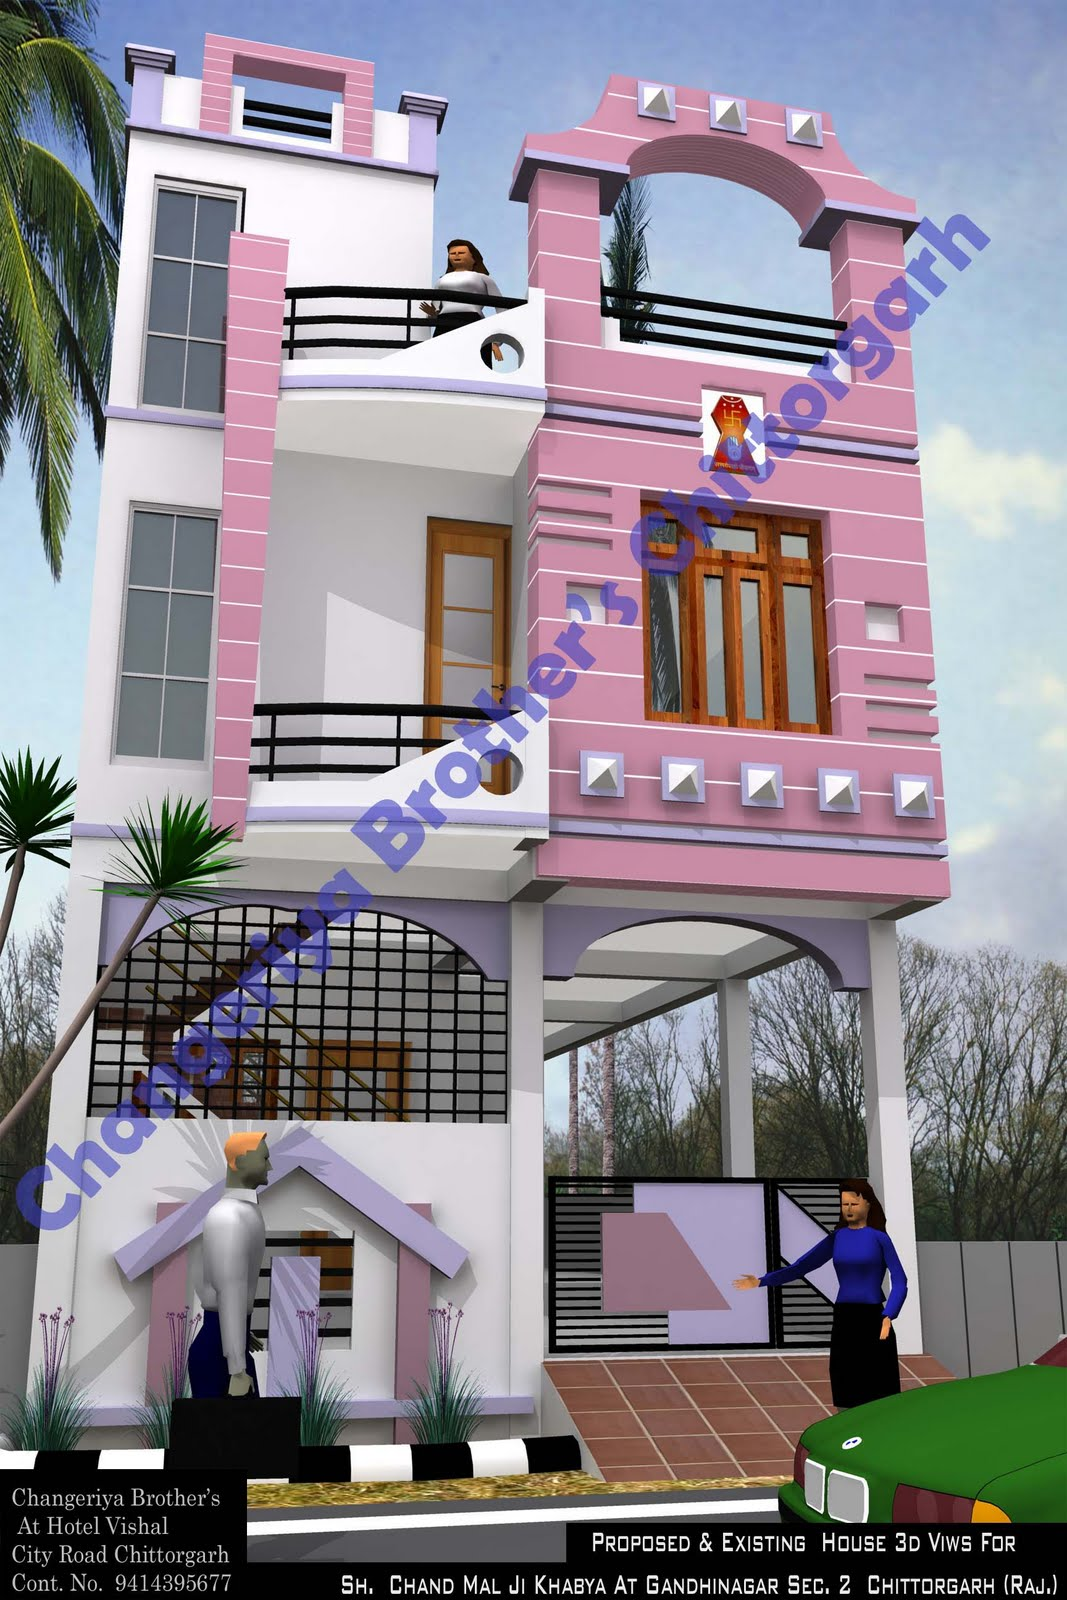 Mr chand mal khabya 3d naksha for House naksha image